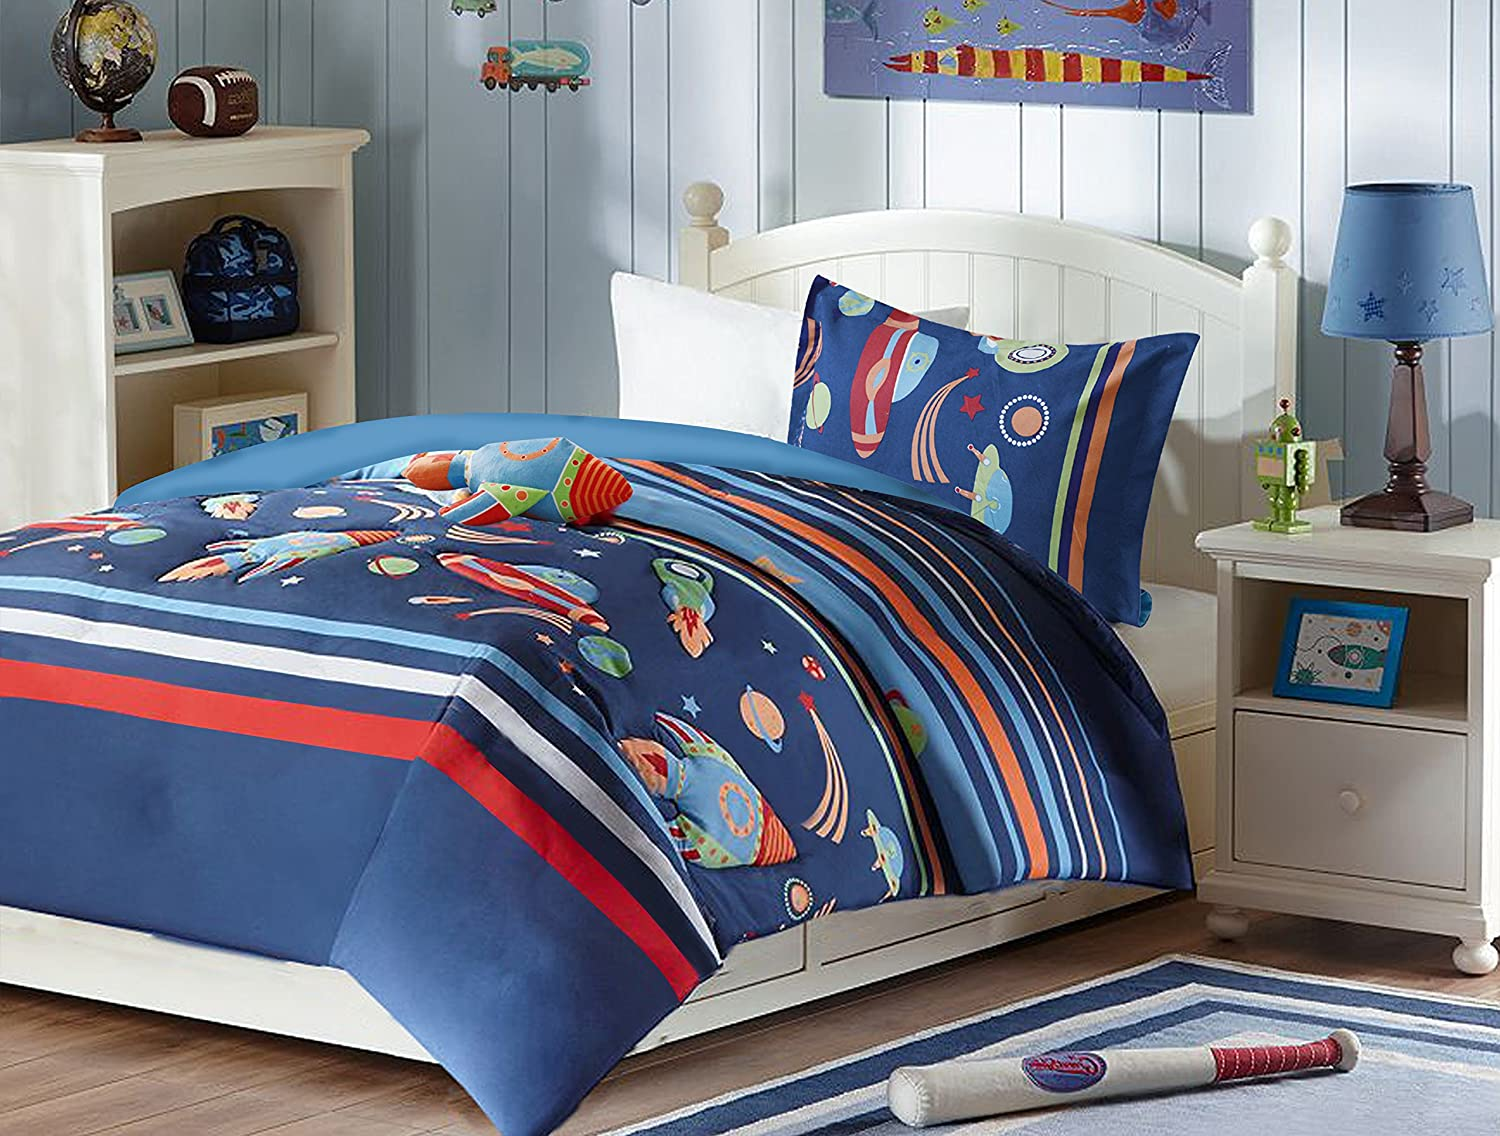 Attractive All American Collection Comforters with More – Ease Bedding with Style EA91